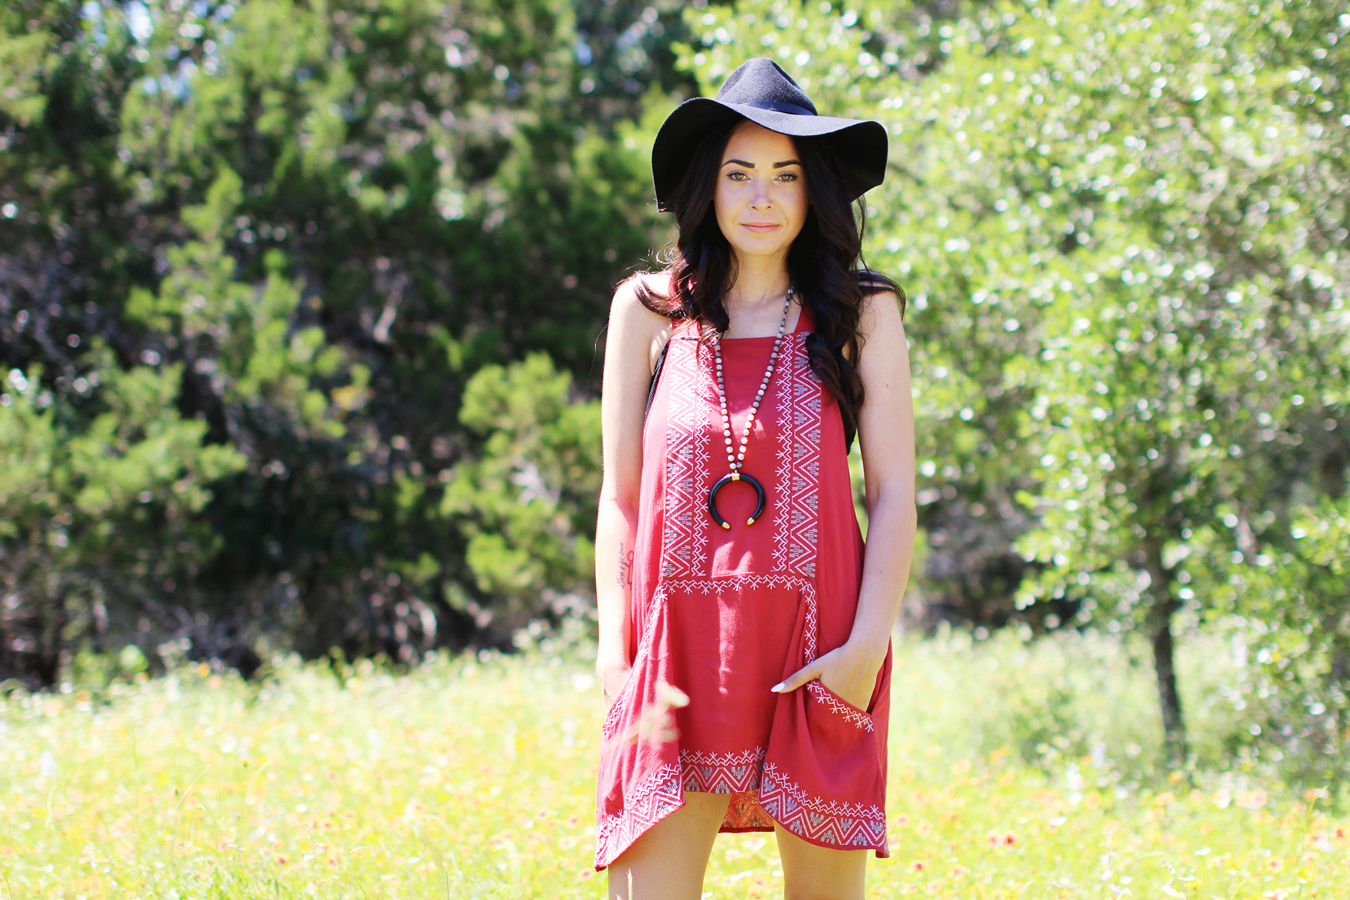 FTT-RED-PINK-SILVER-DRESS-HAT-WATER-FASHION-SHOOT-15